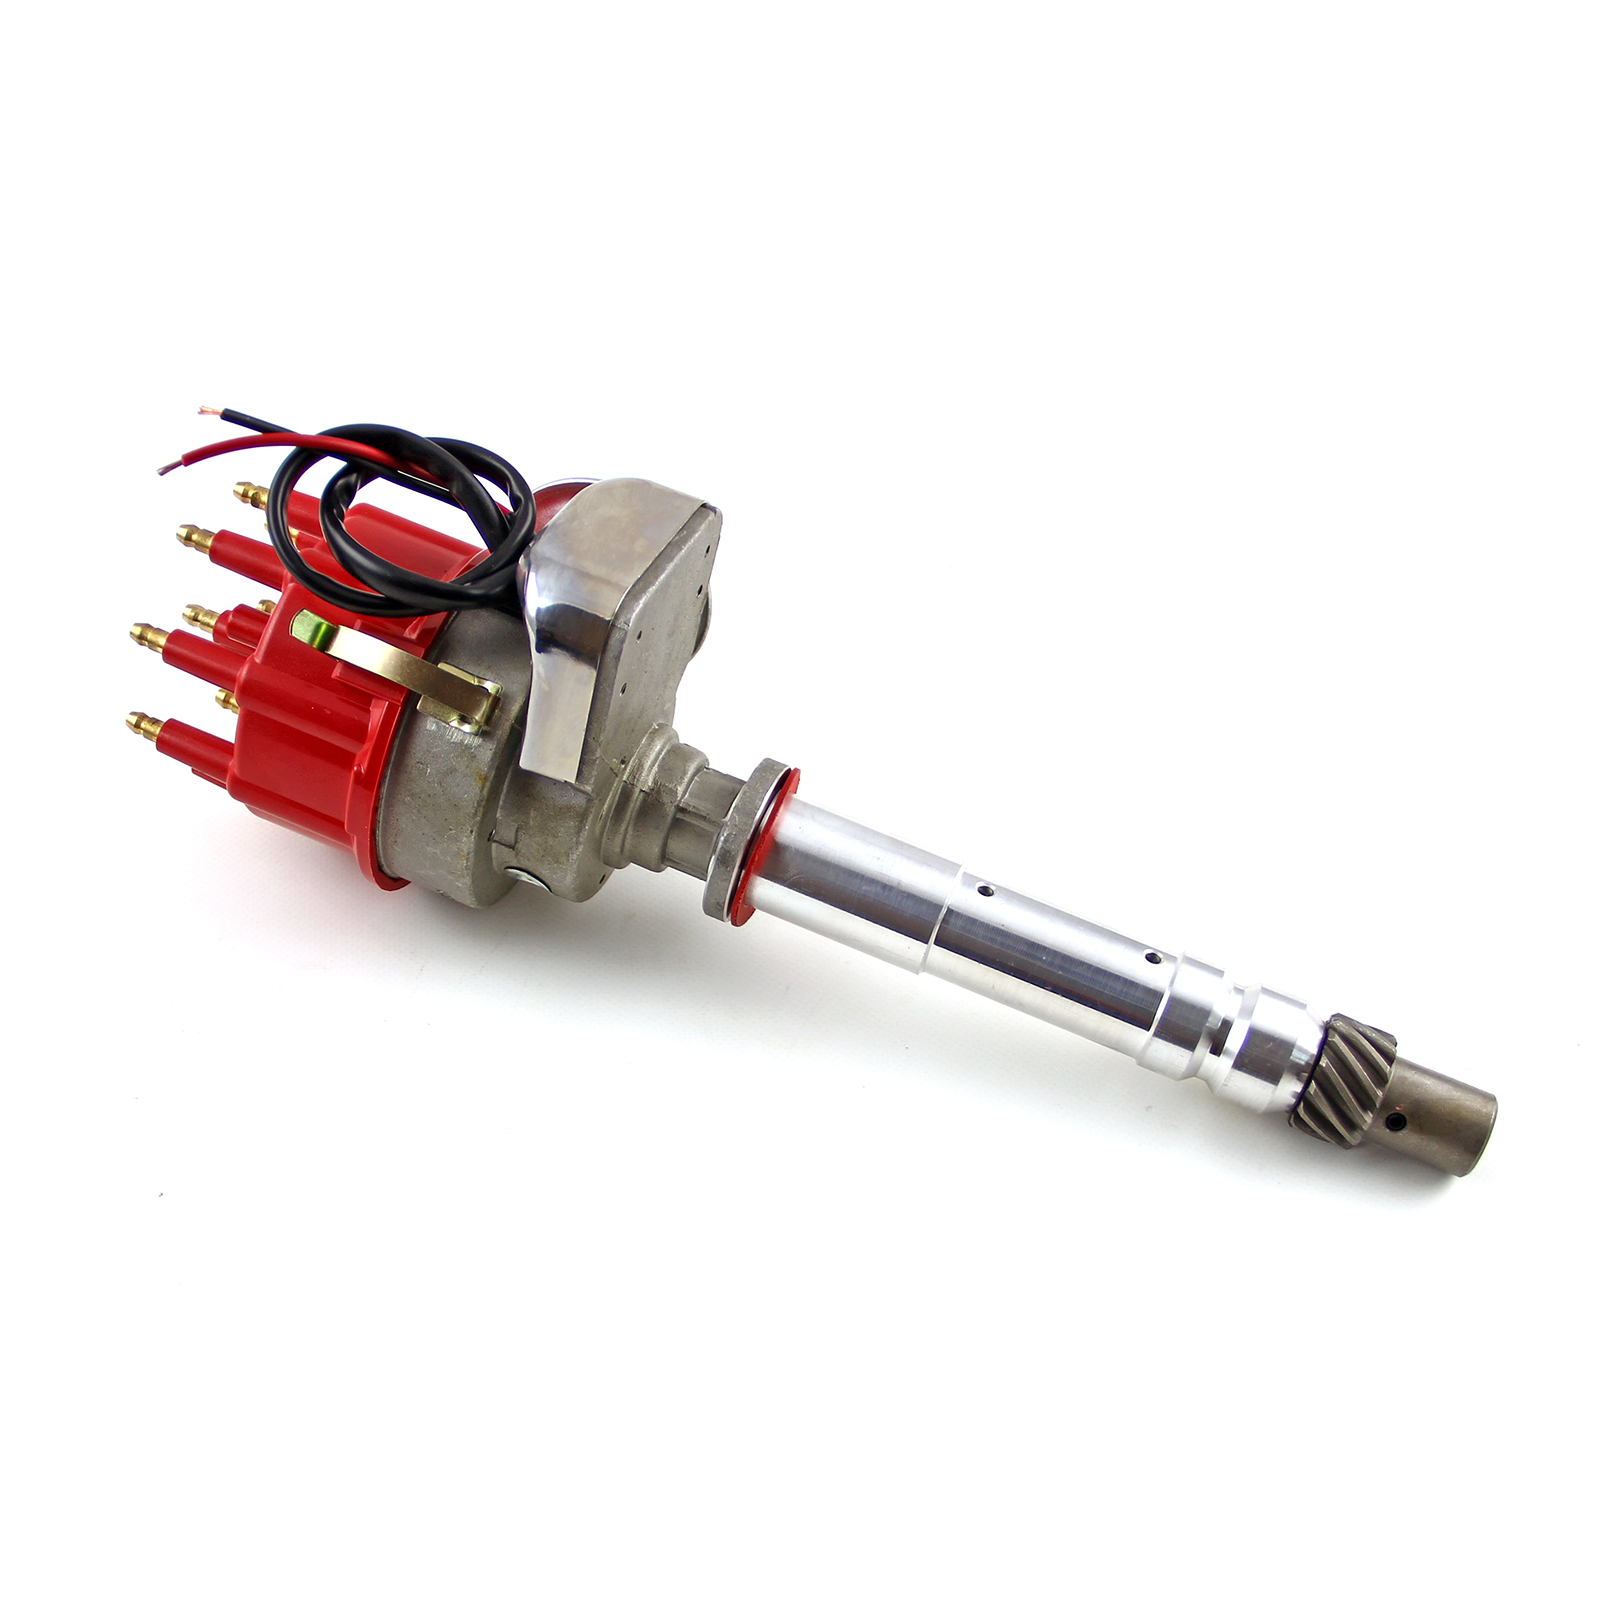 Details about Chevy SBC 350 BBC 454 Ready to Run Electronic Distributor  (Vacuum) - Red Cap